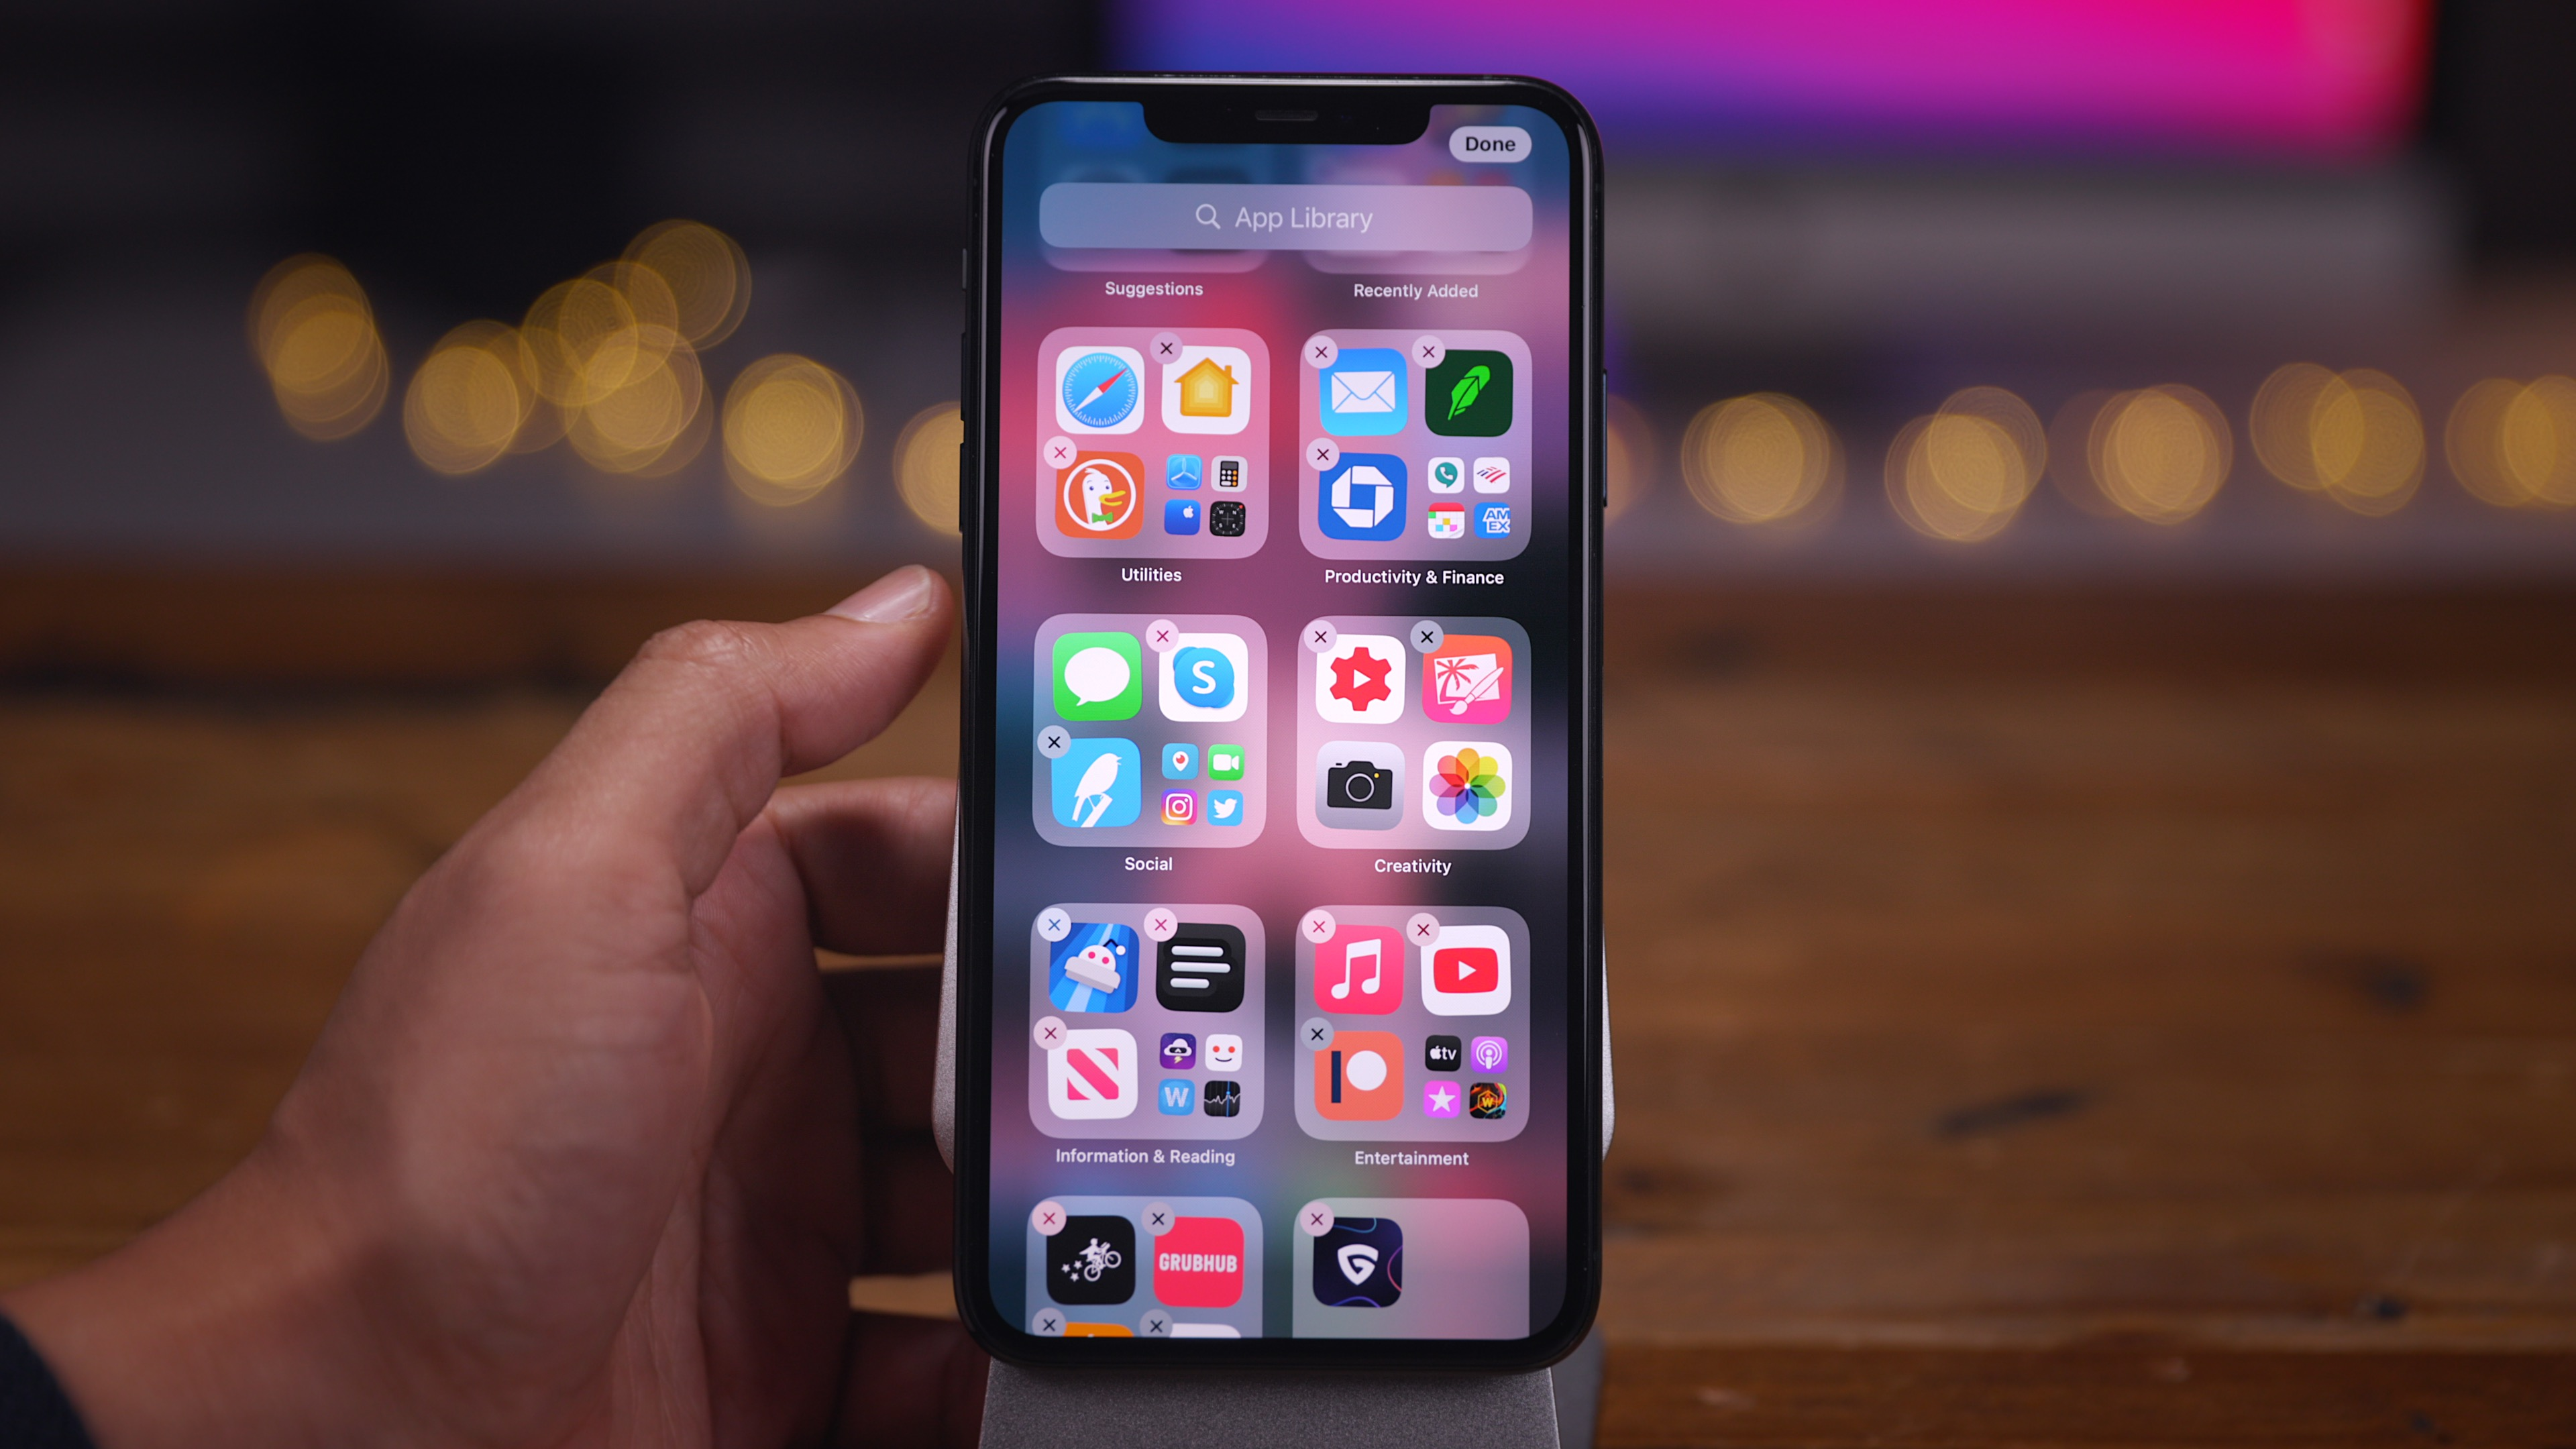 Ios 14 home screen tips and tricks move apps from app library to home screen